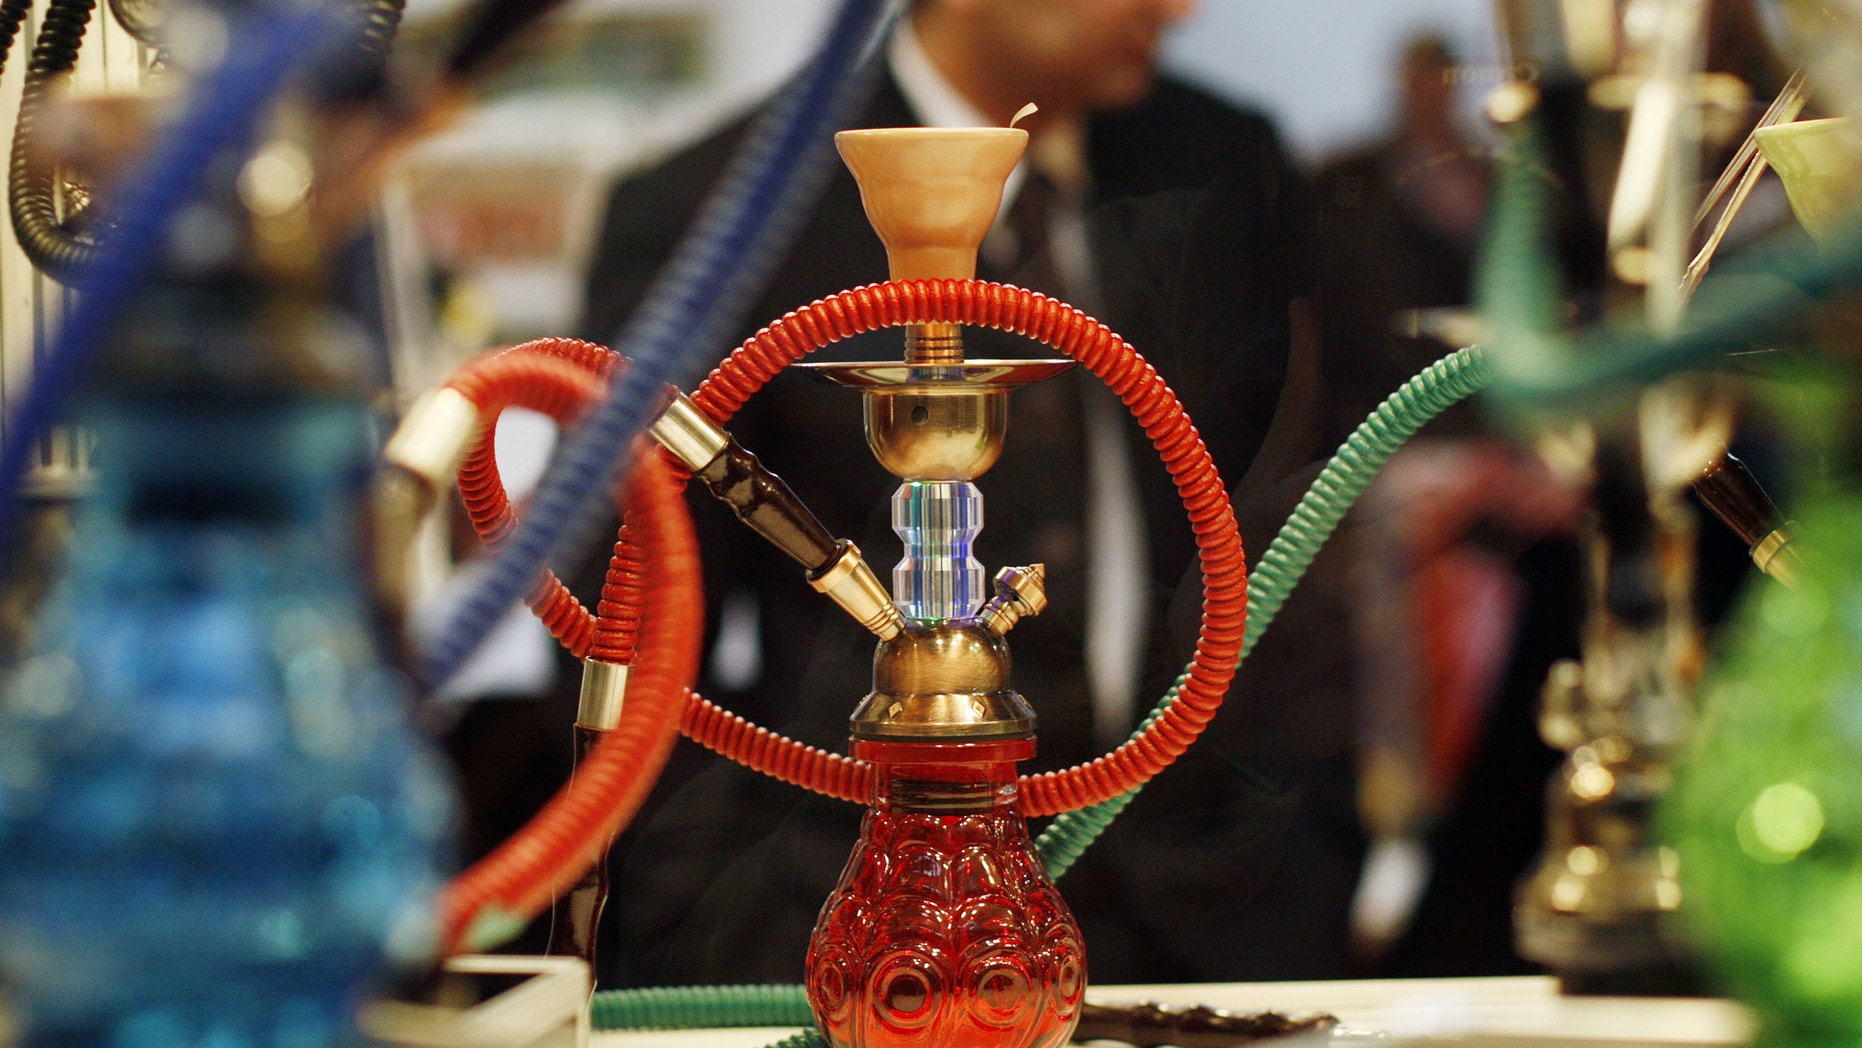 Smoking hookah tobacco negatively impacts heart rate and blood pressure, a paper from the American Heart Association said Friday.